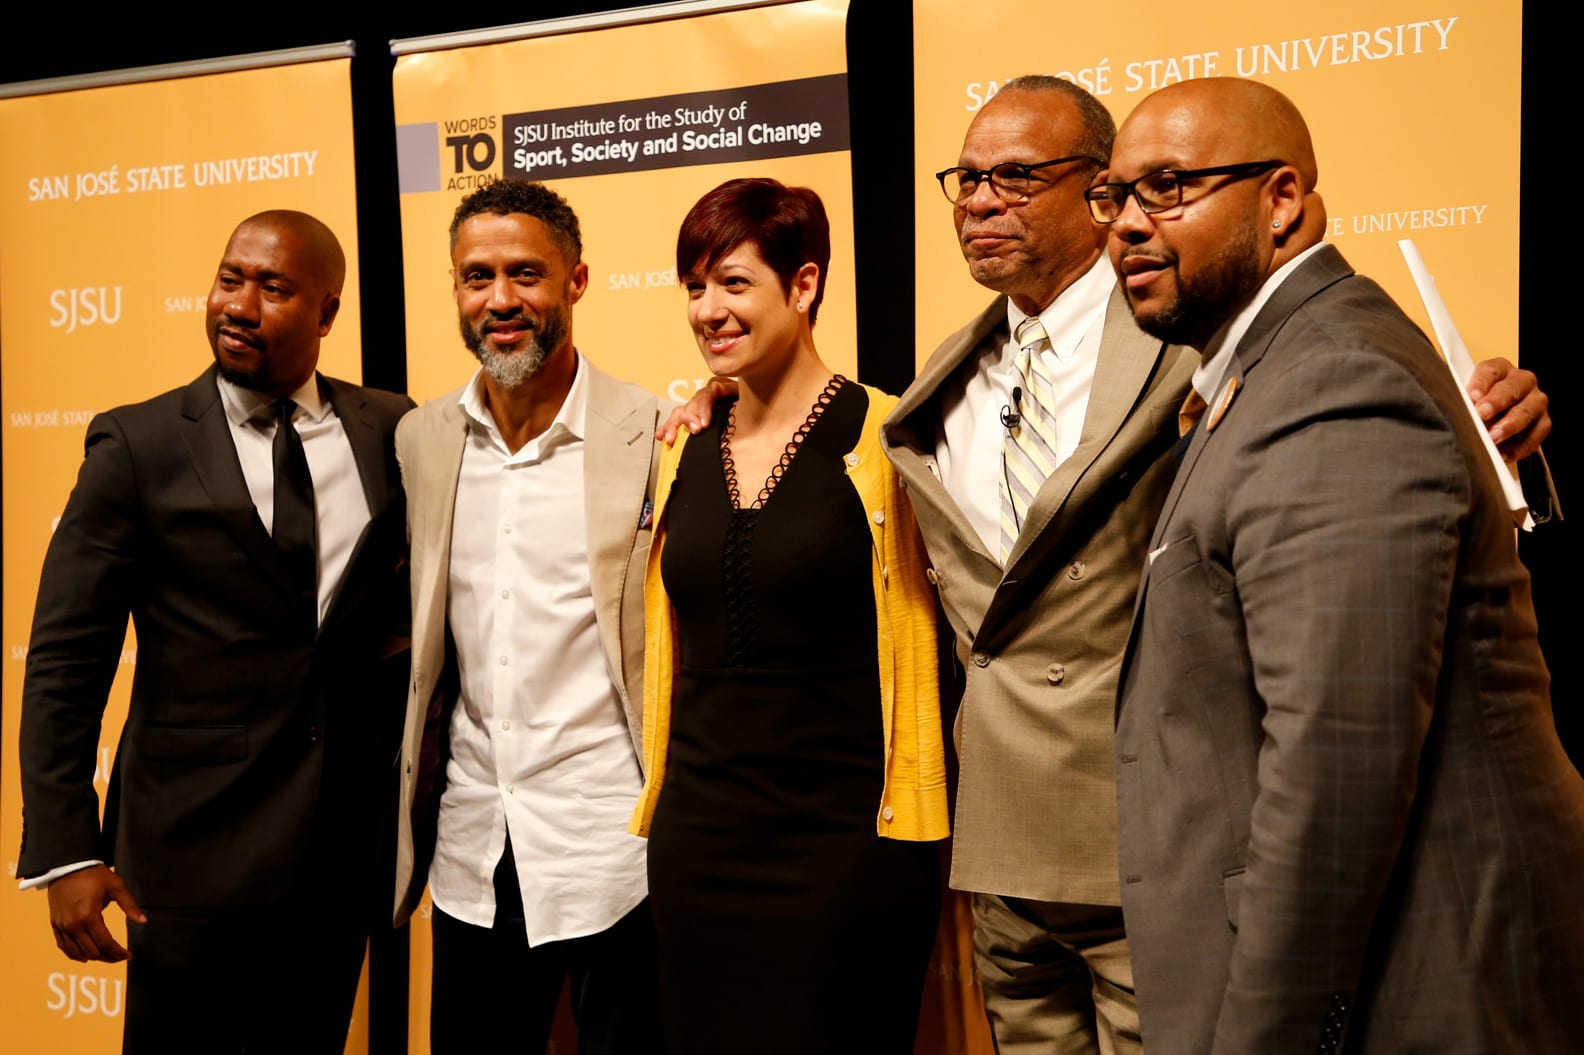 Bridging the Gap: Perspectives on Athlete Activism in an Era of Growth Panelists Damion Thomas, Mahmoud Abdul-Rauf, Toni Smith-Thompson, and C. Keith Harrison (right) pose with Moderator Bill Rhoden, (second from the right.)